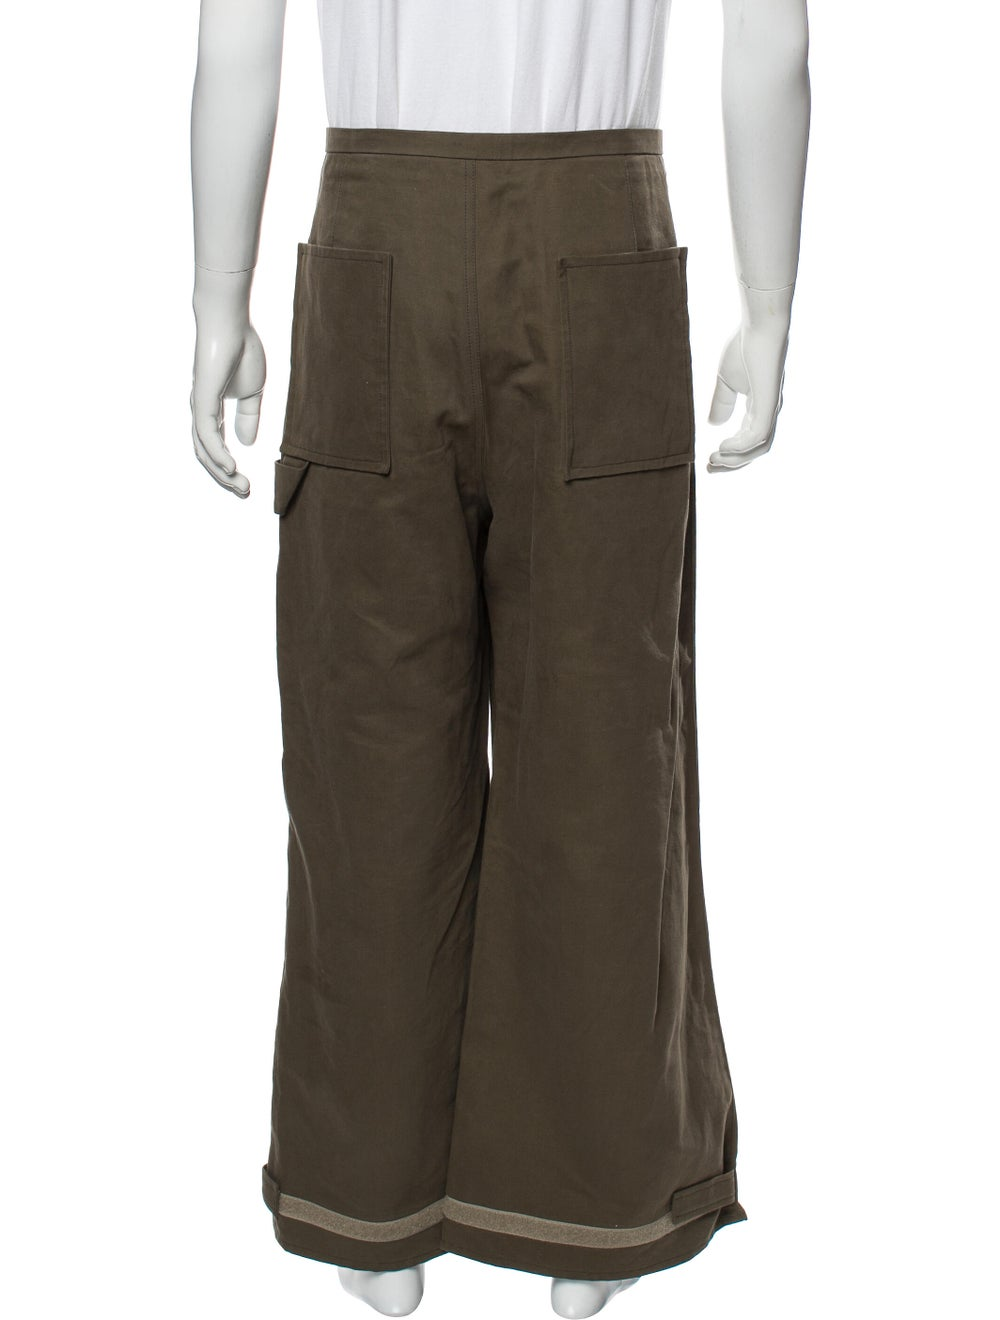 Acne Studios Pants Green - image 3